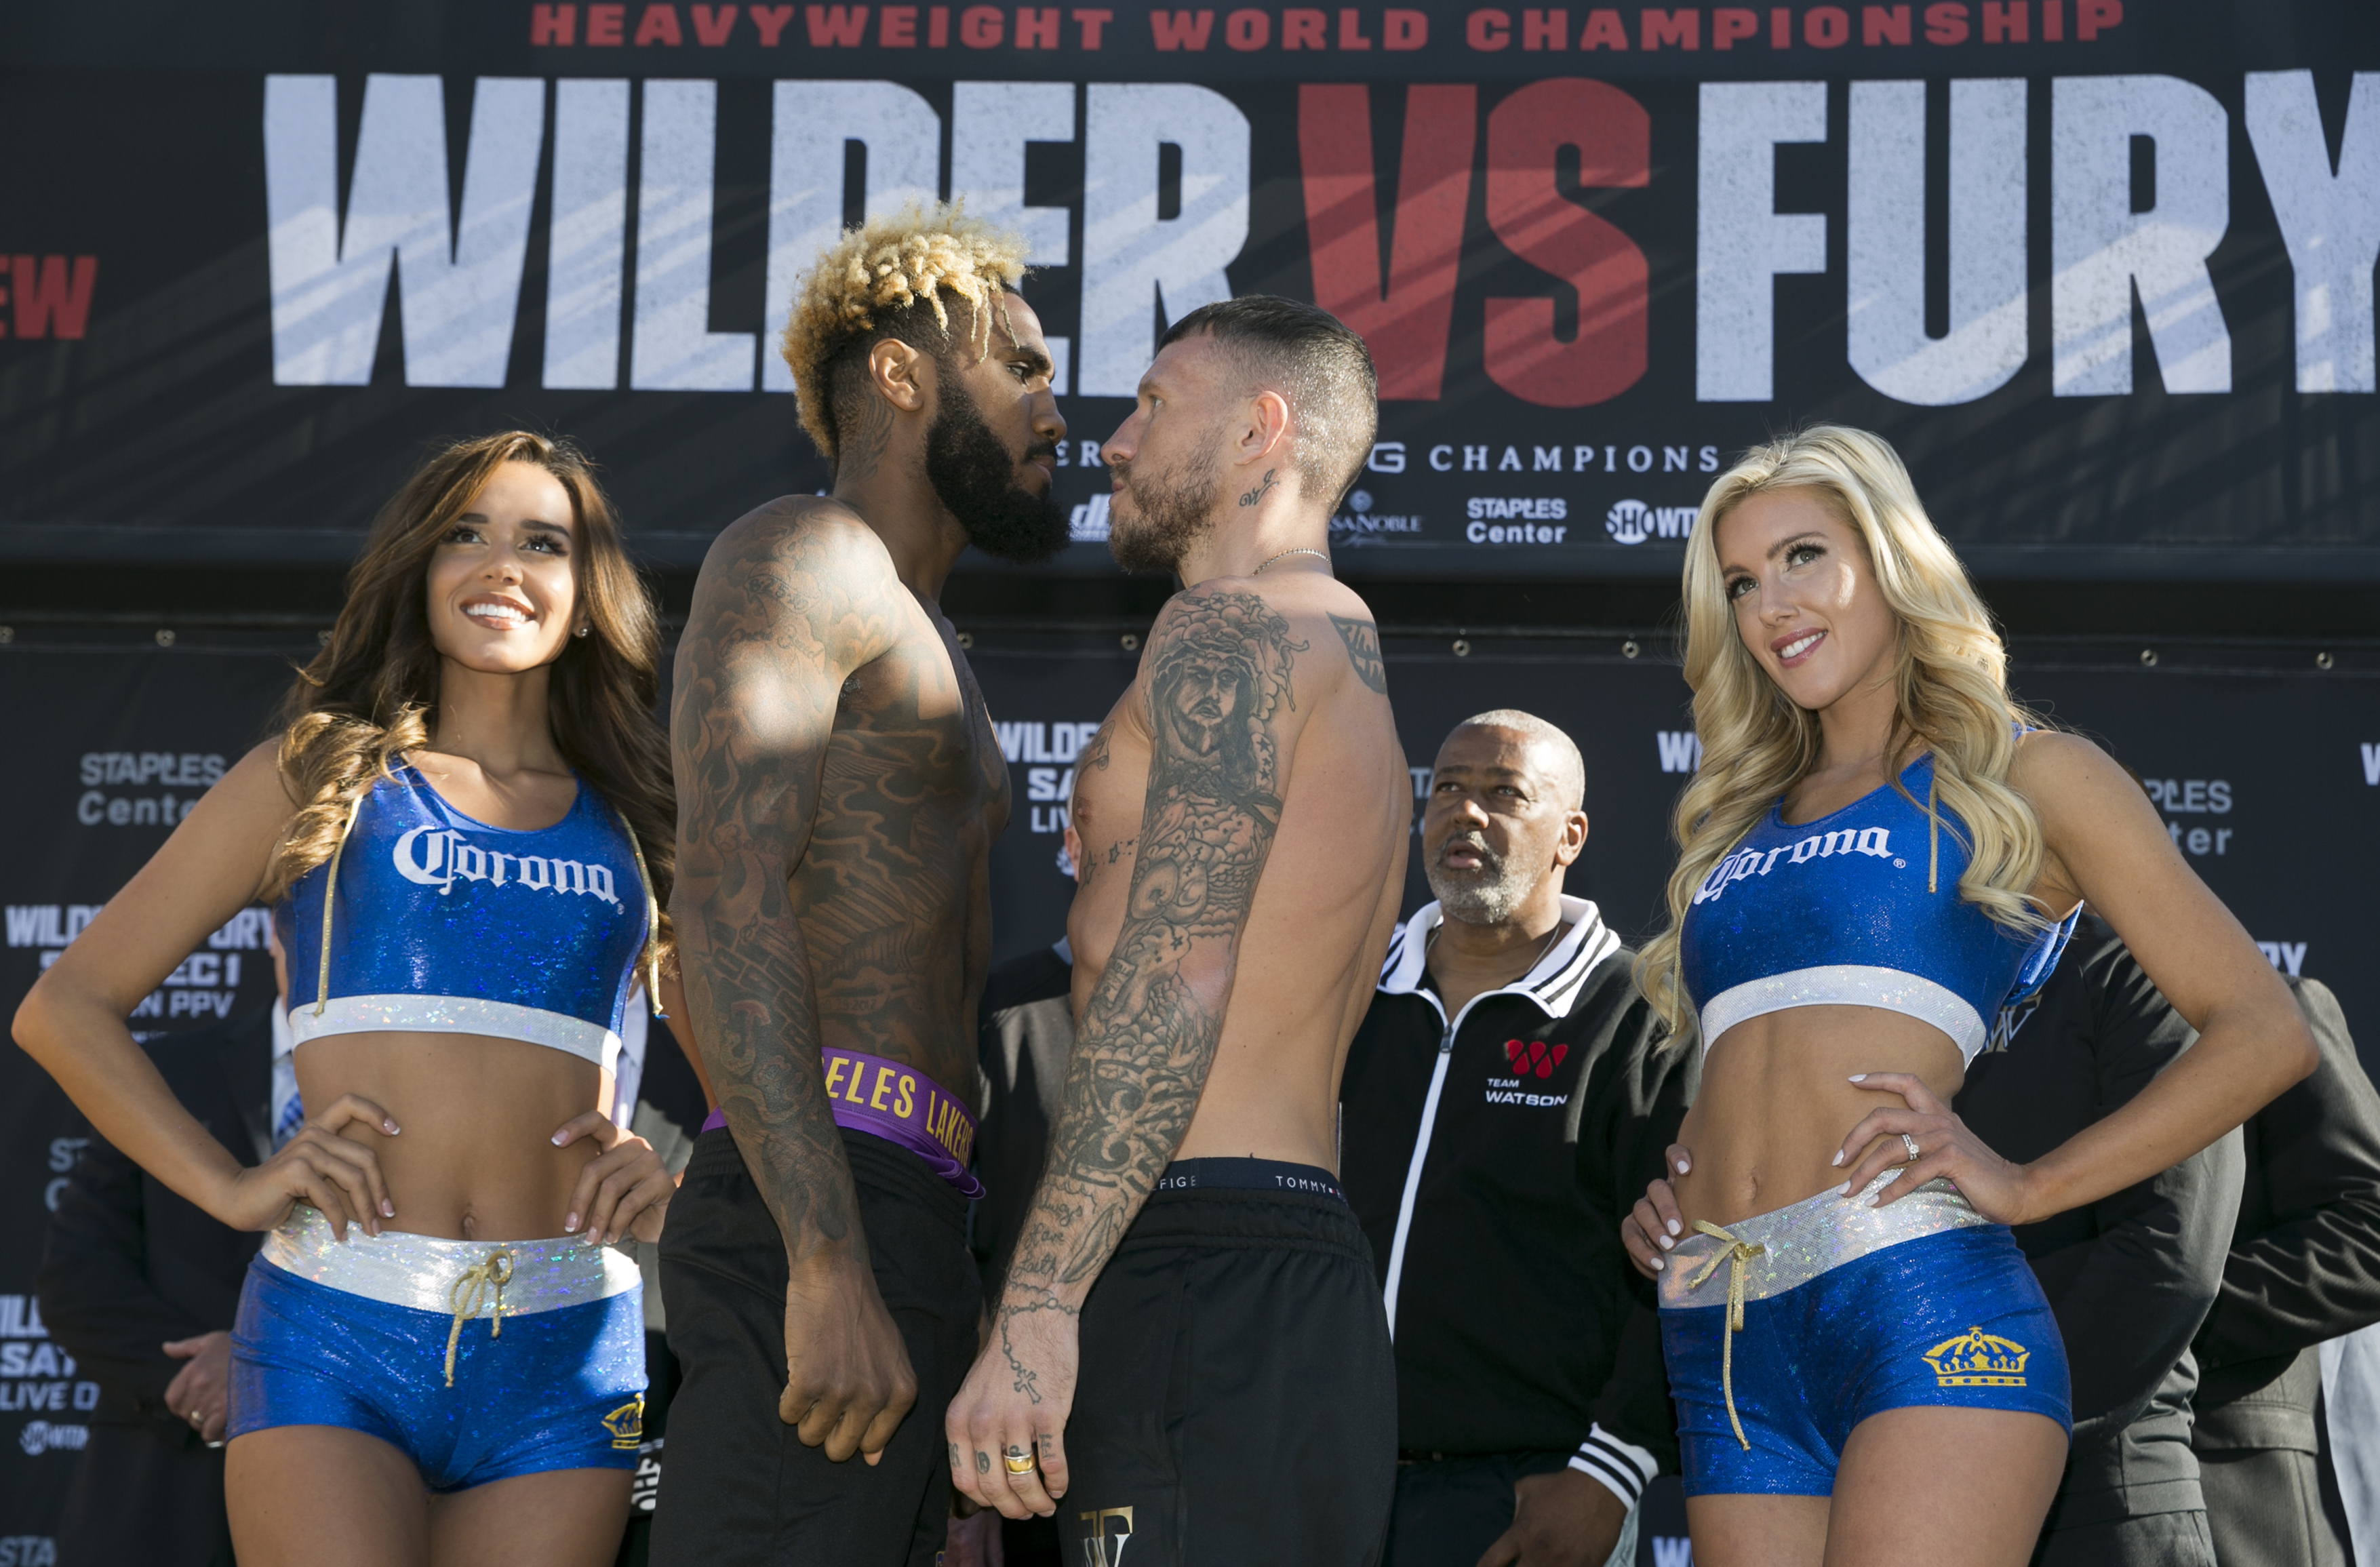 There's a big difference in what Hurd and Welborn will earn. Image: PA Images